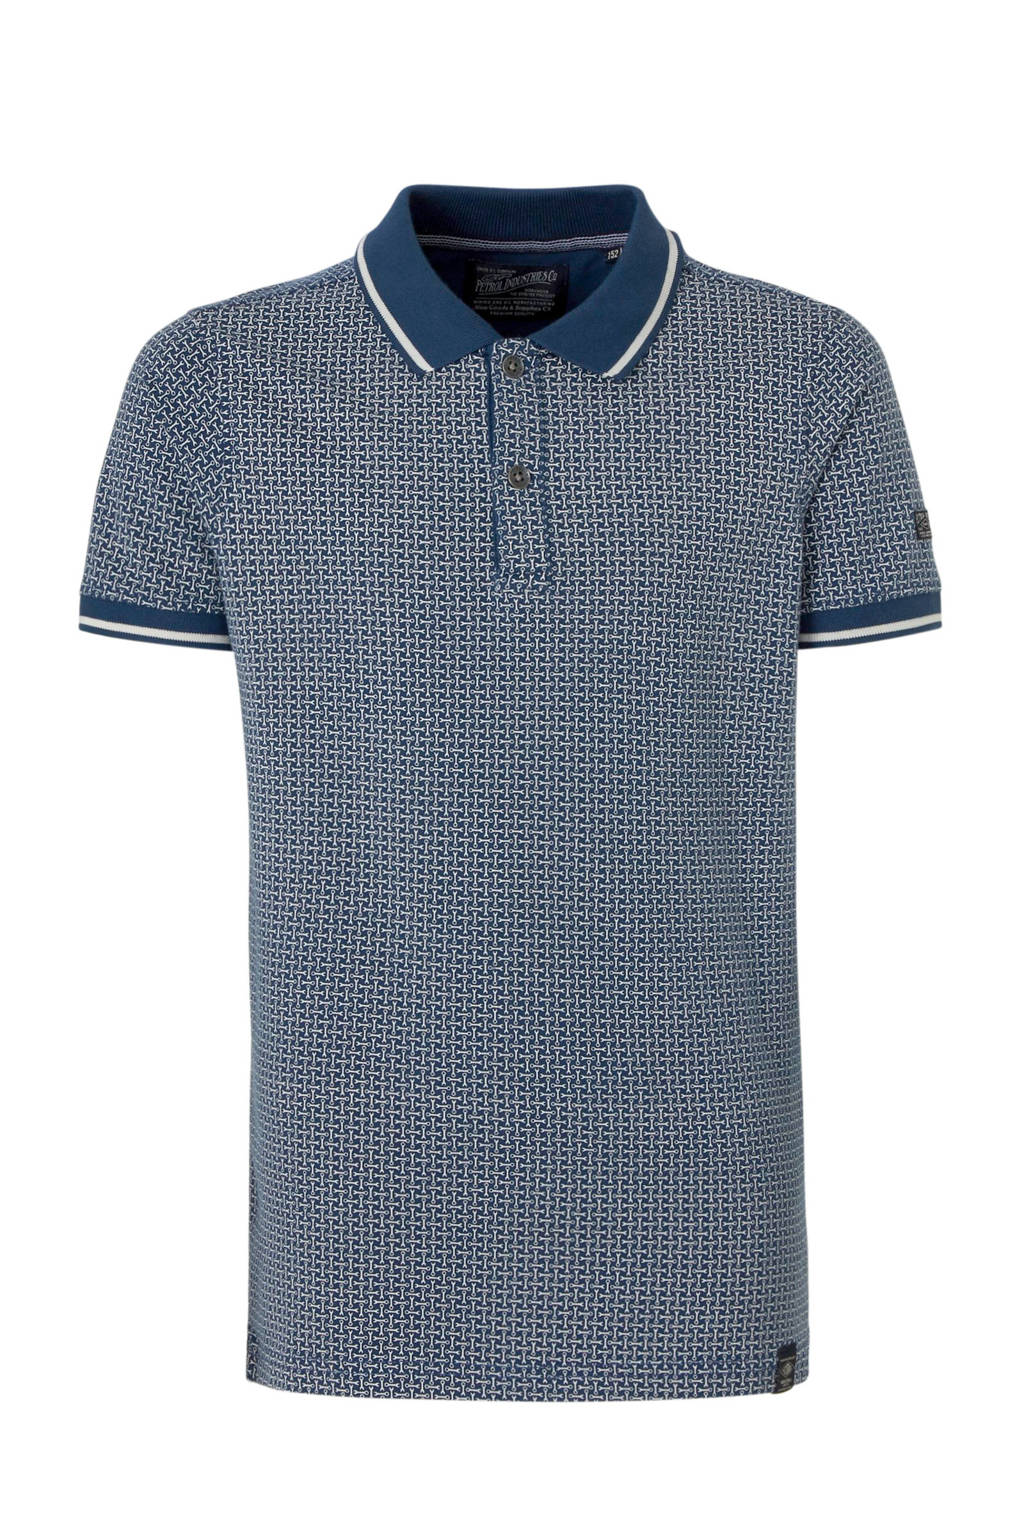 Petrol Industries polo met all over print donkerblauw/wit, Donkerblauw/wit